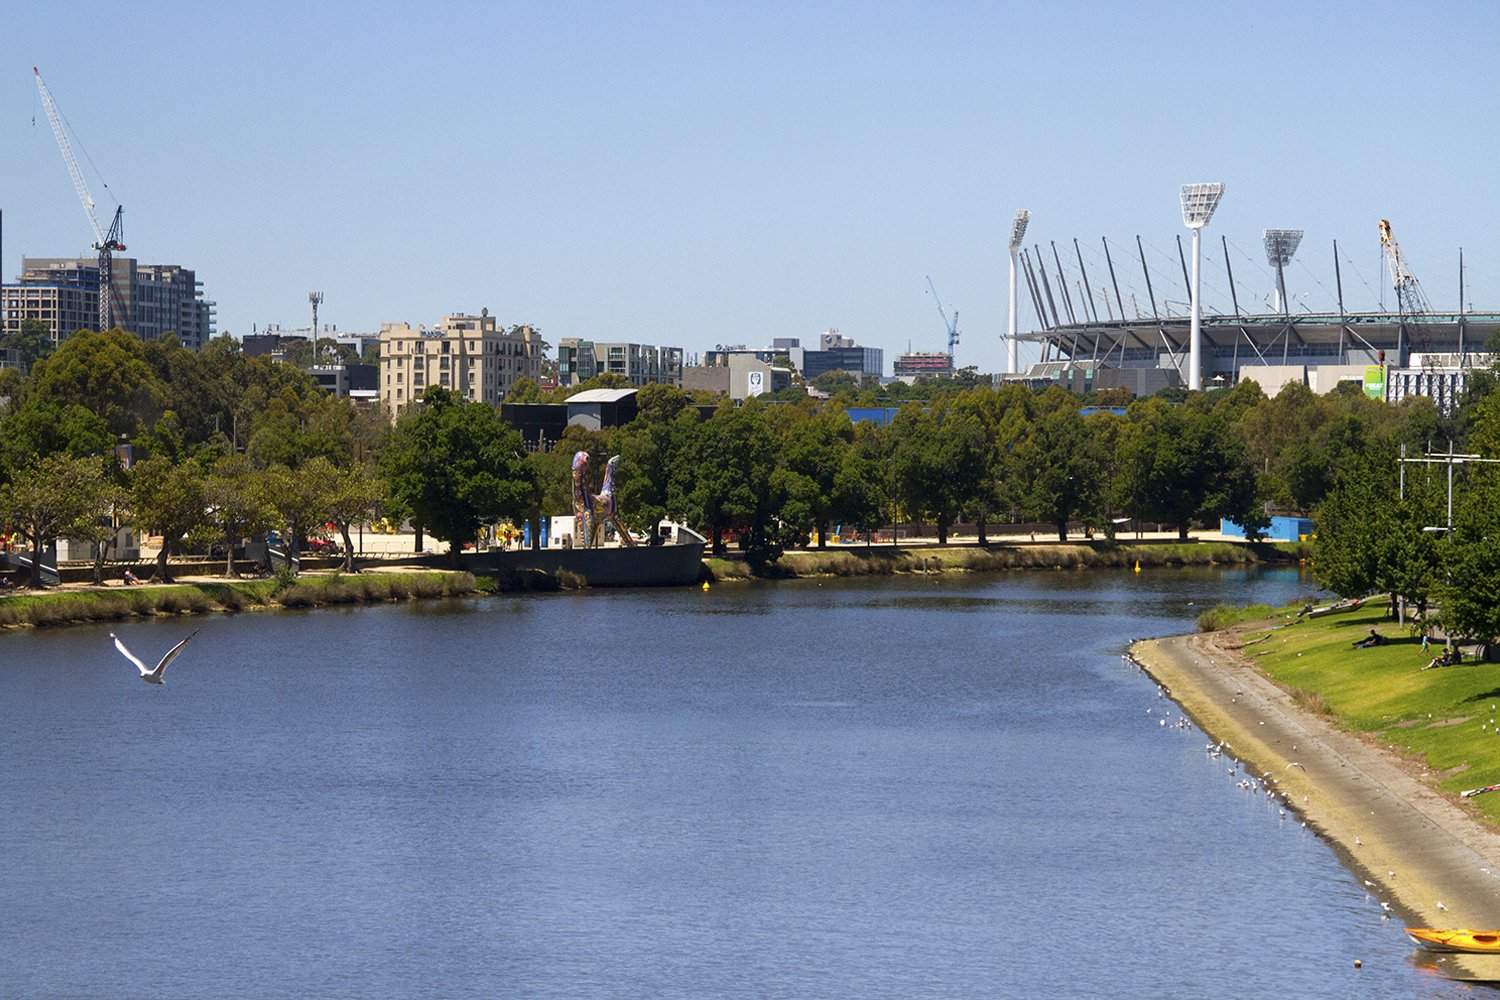 Yarra River - One of the things to do in Melbourne